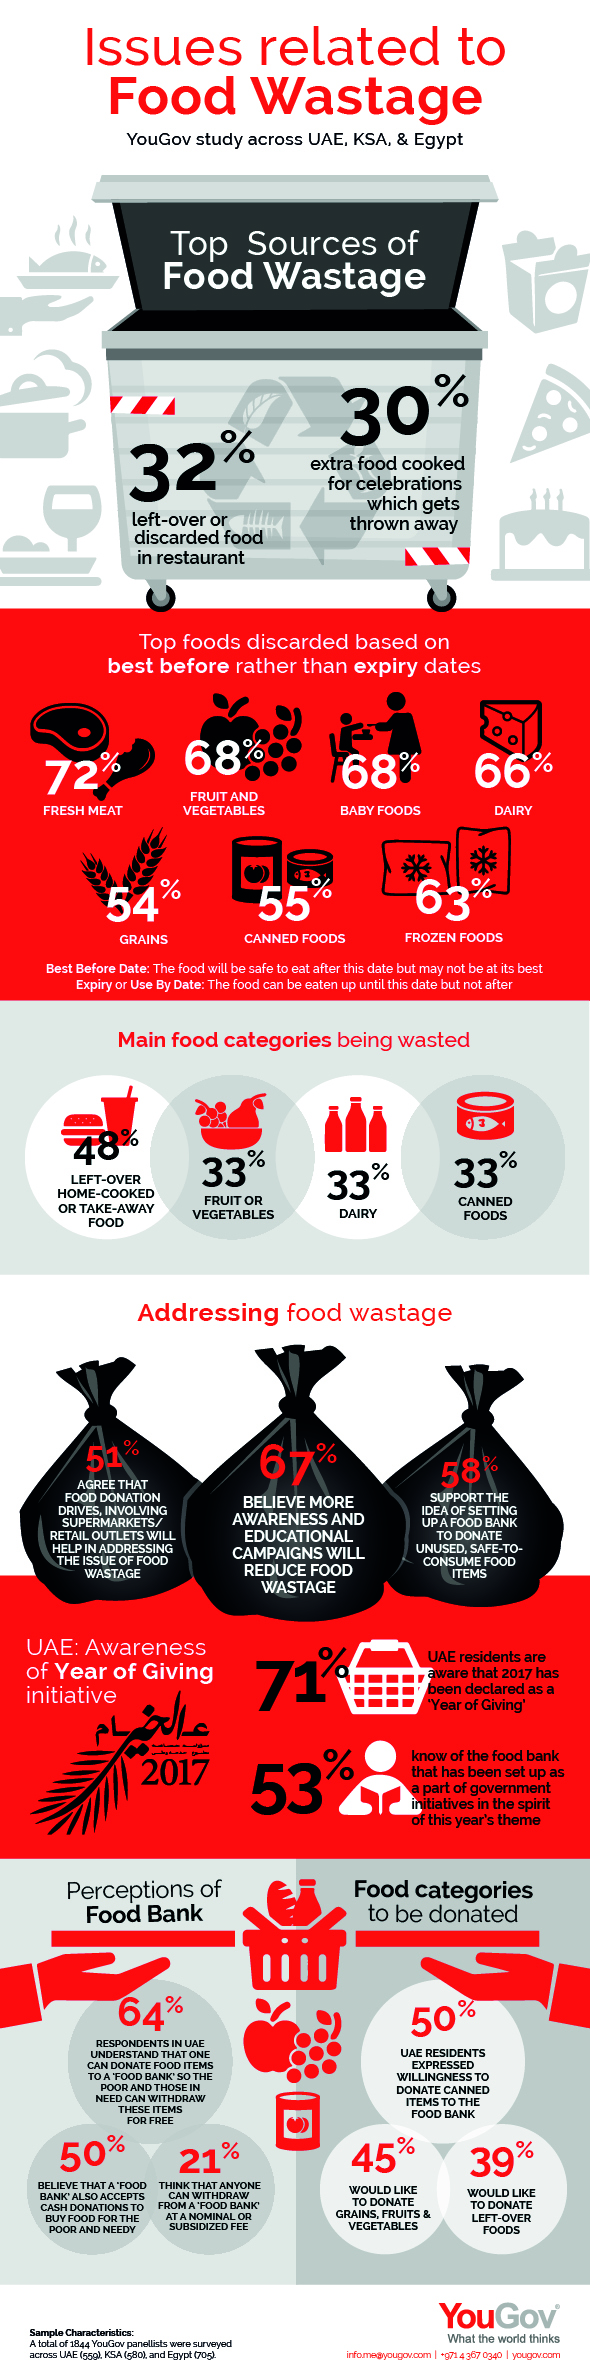 Issues Related to Food Wastage Infographic